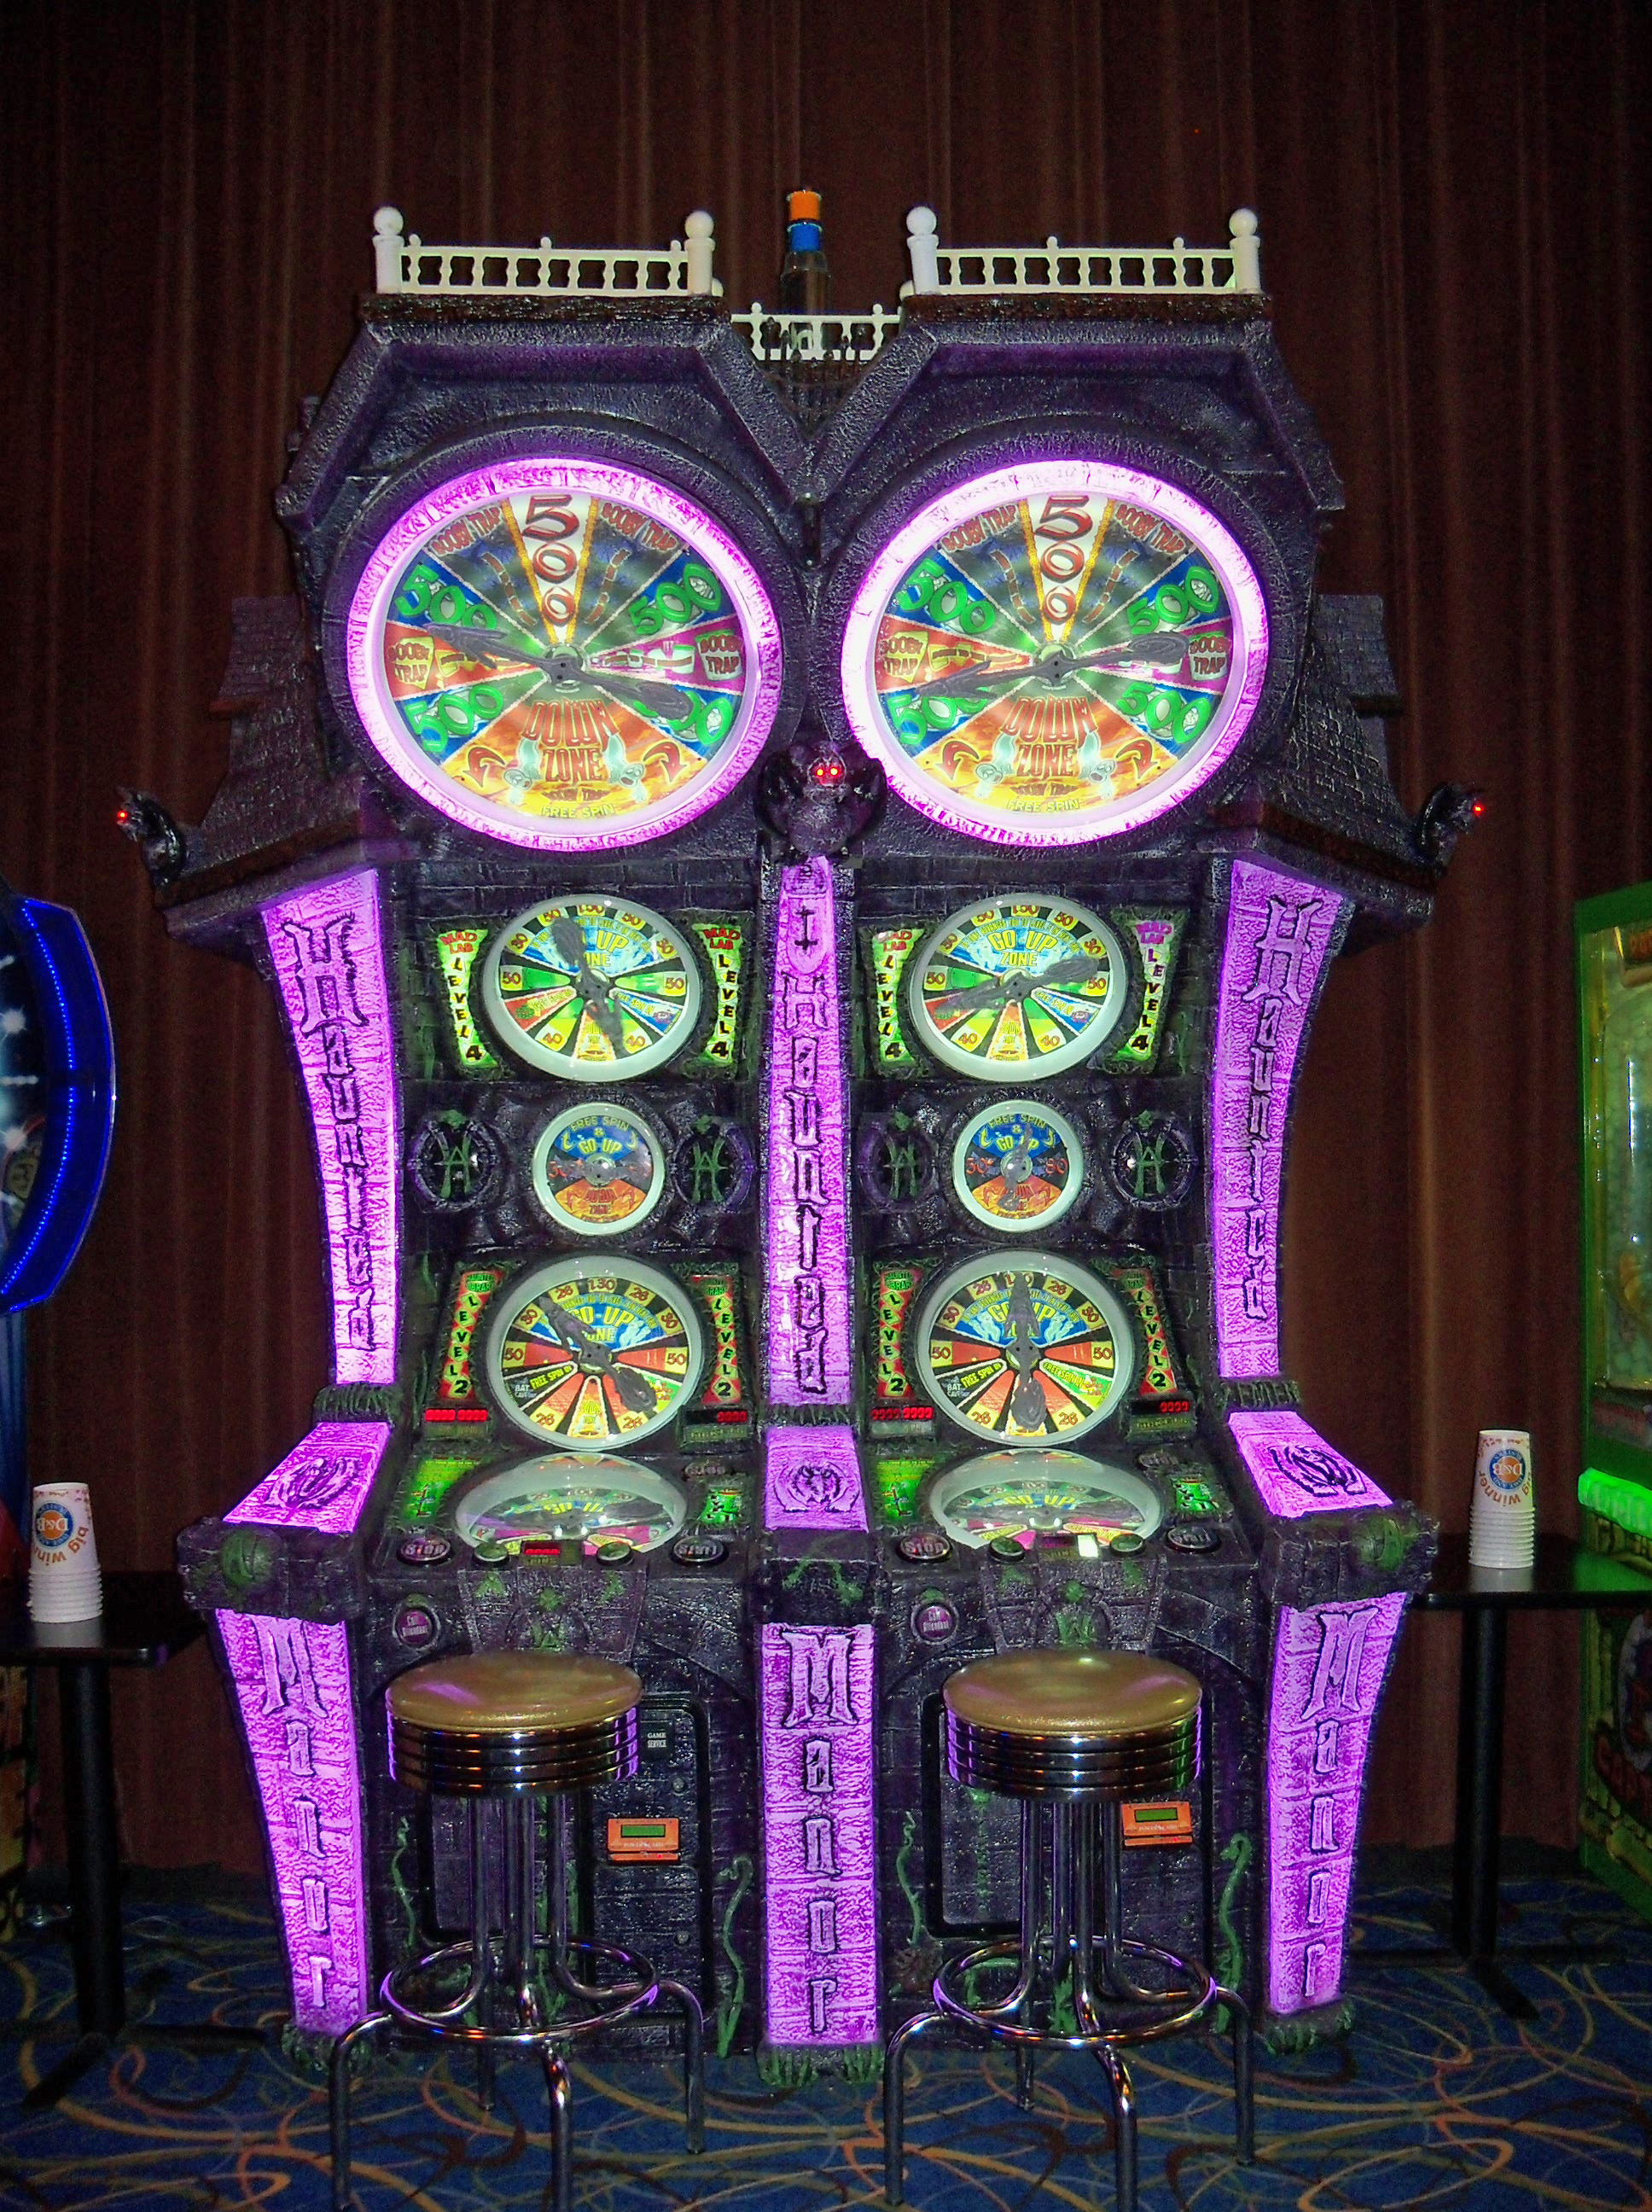 dave and busters columbus columbus ohio craigslist view original updated on 10 2 2014 at 11. Black Bedroom Furniture Sets. Home Design Ideas